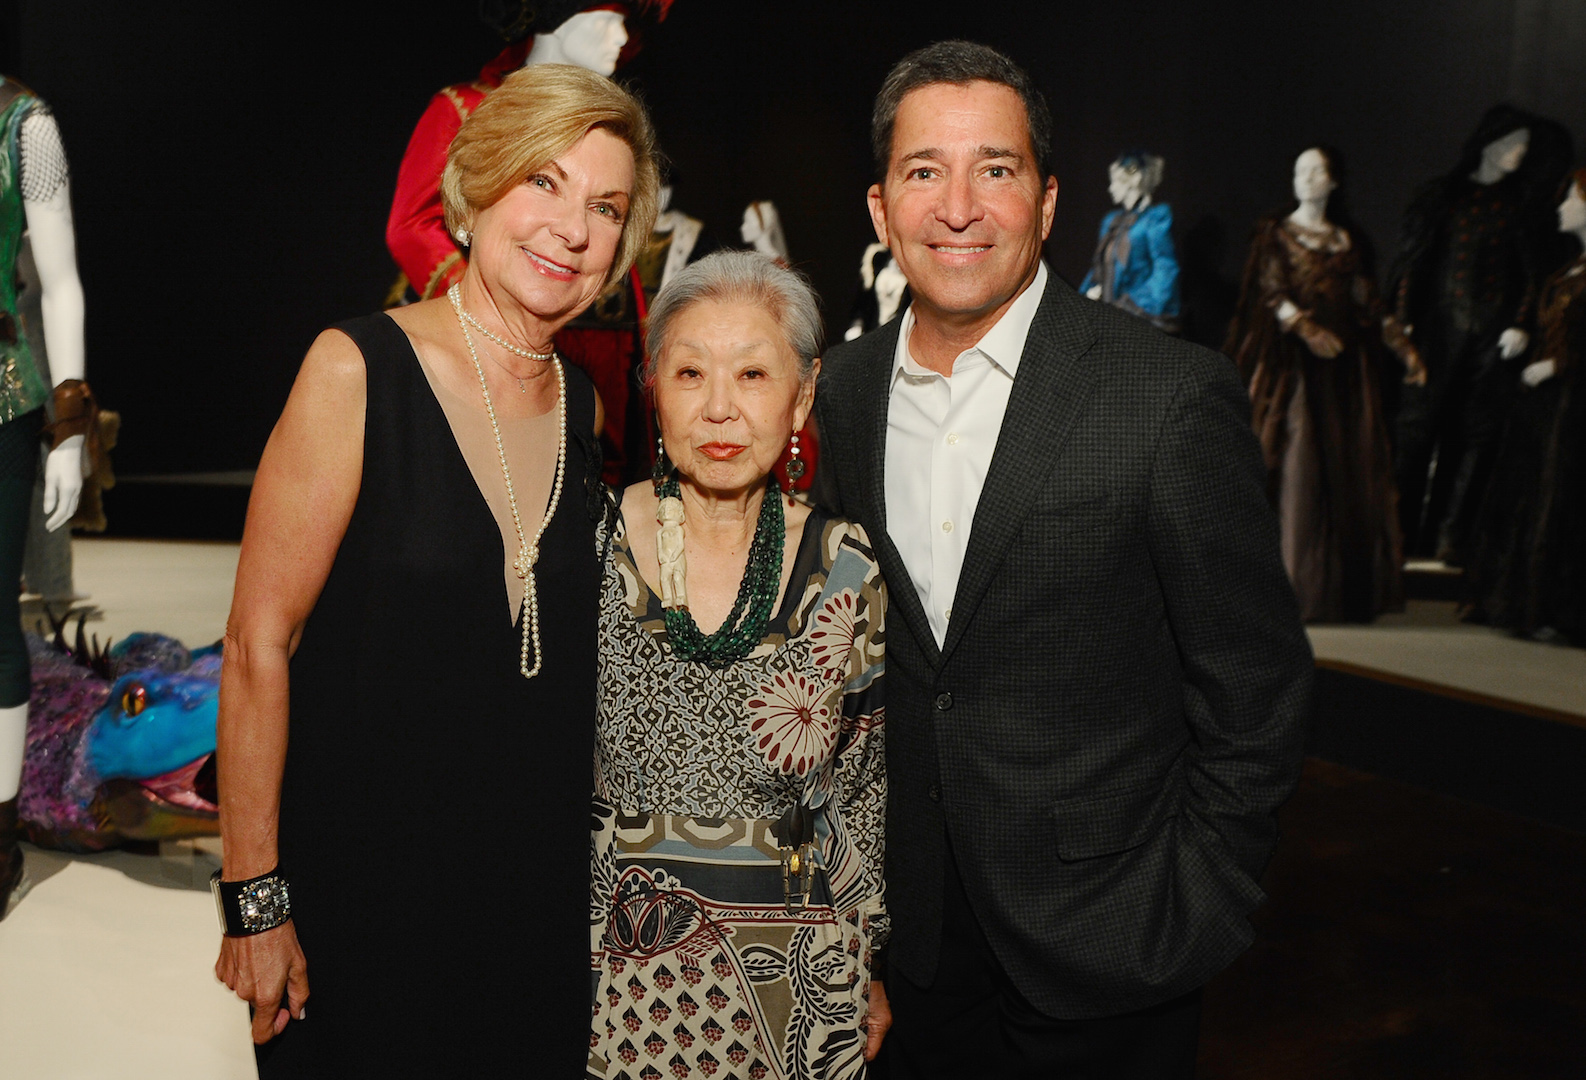 Barbara Bundy, FIDM museum director, from left, Mary Rose and Bruce Rosenblum, chairman and CEO of the Television Academy, seen at The 9th Annual Outstanding Art of Television Costume Design Exhibition opening at the FIDM Museum & Galleries on the Park on Saturday, July 18, 2015, in Los Angeles. The Television Academy and FIDM Museum honored this year's Emmy(R) Award winners in Outstanding Costume Design at the opening reception for this annual special exhibition. (Photo by Vince Bucci/Invision for the Television Academy/AP Images)